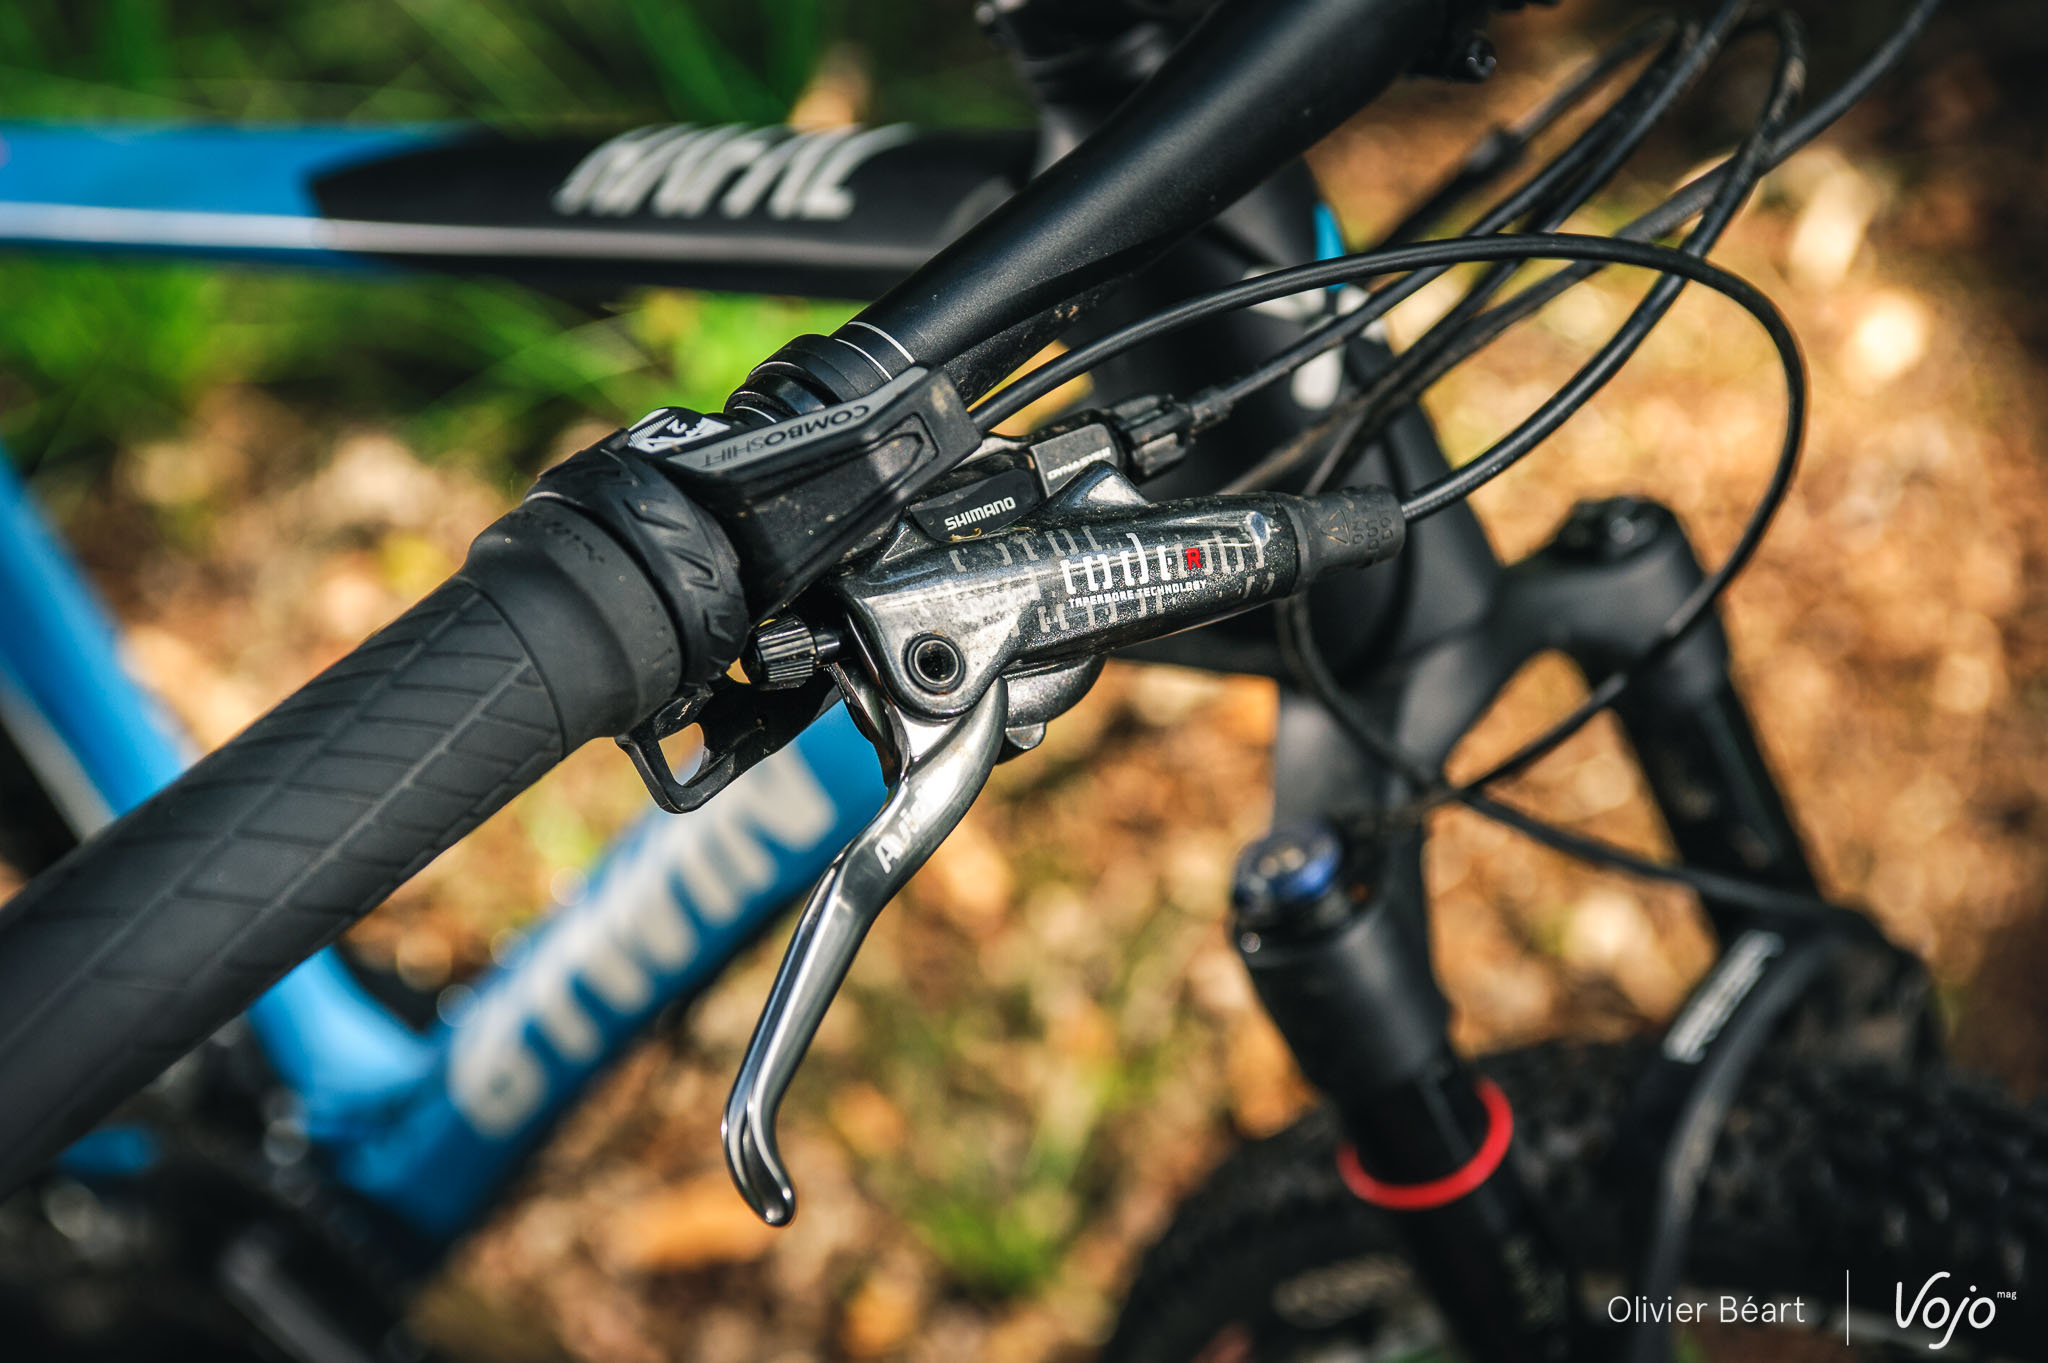 btwin_rafal_700_test_details_copyright_obeart_vojomag-28